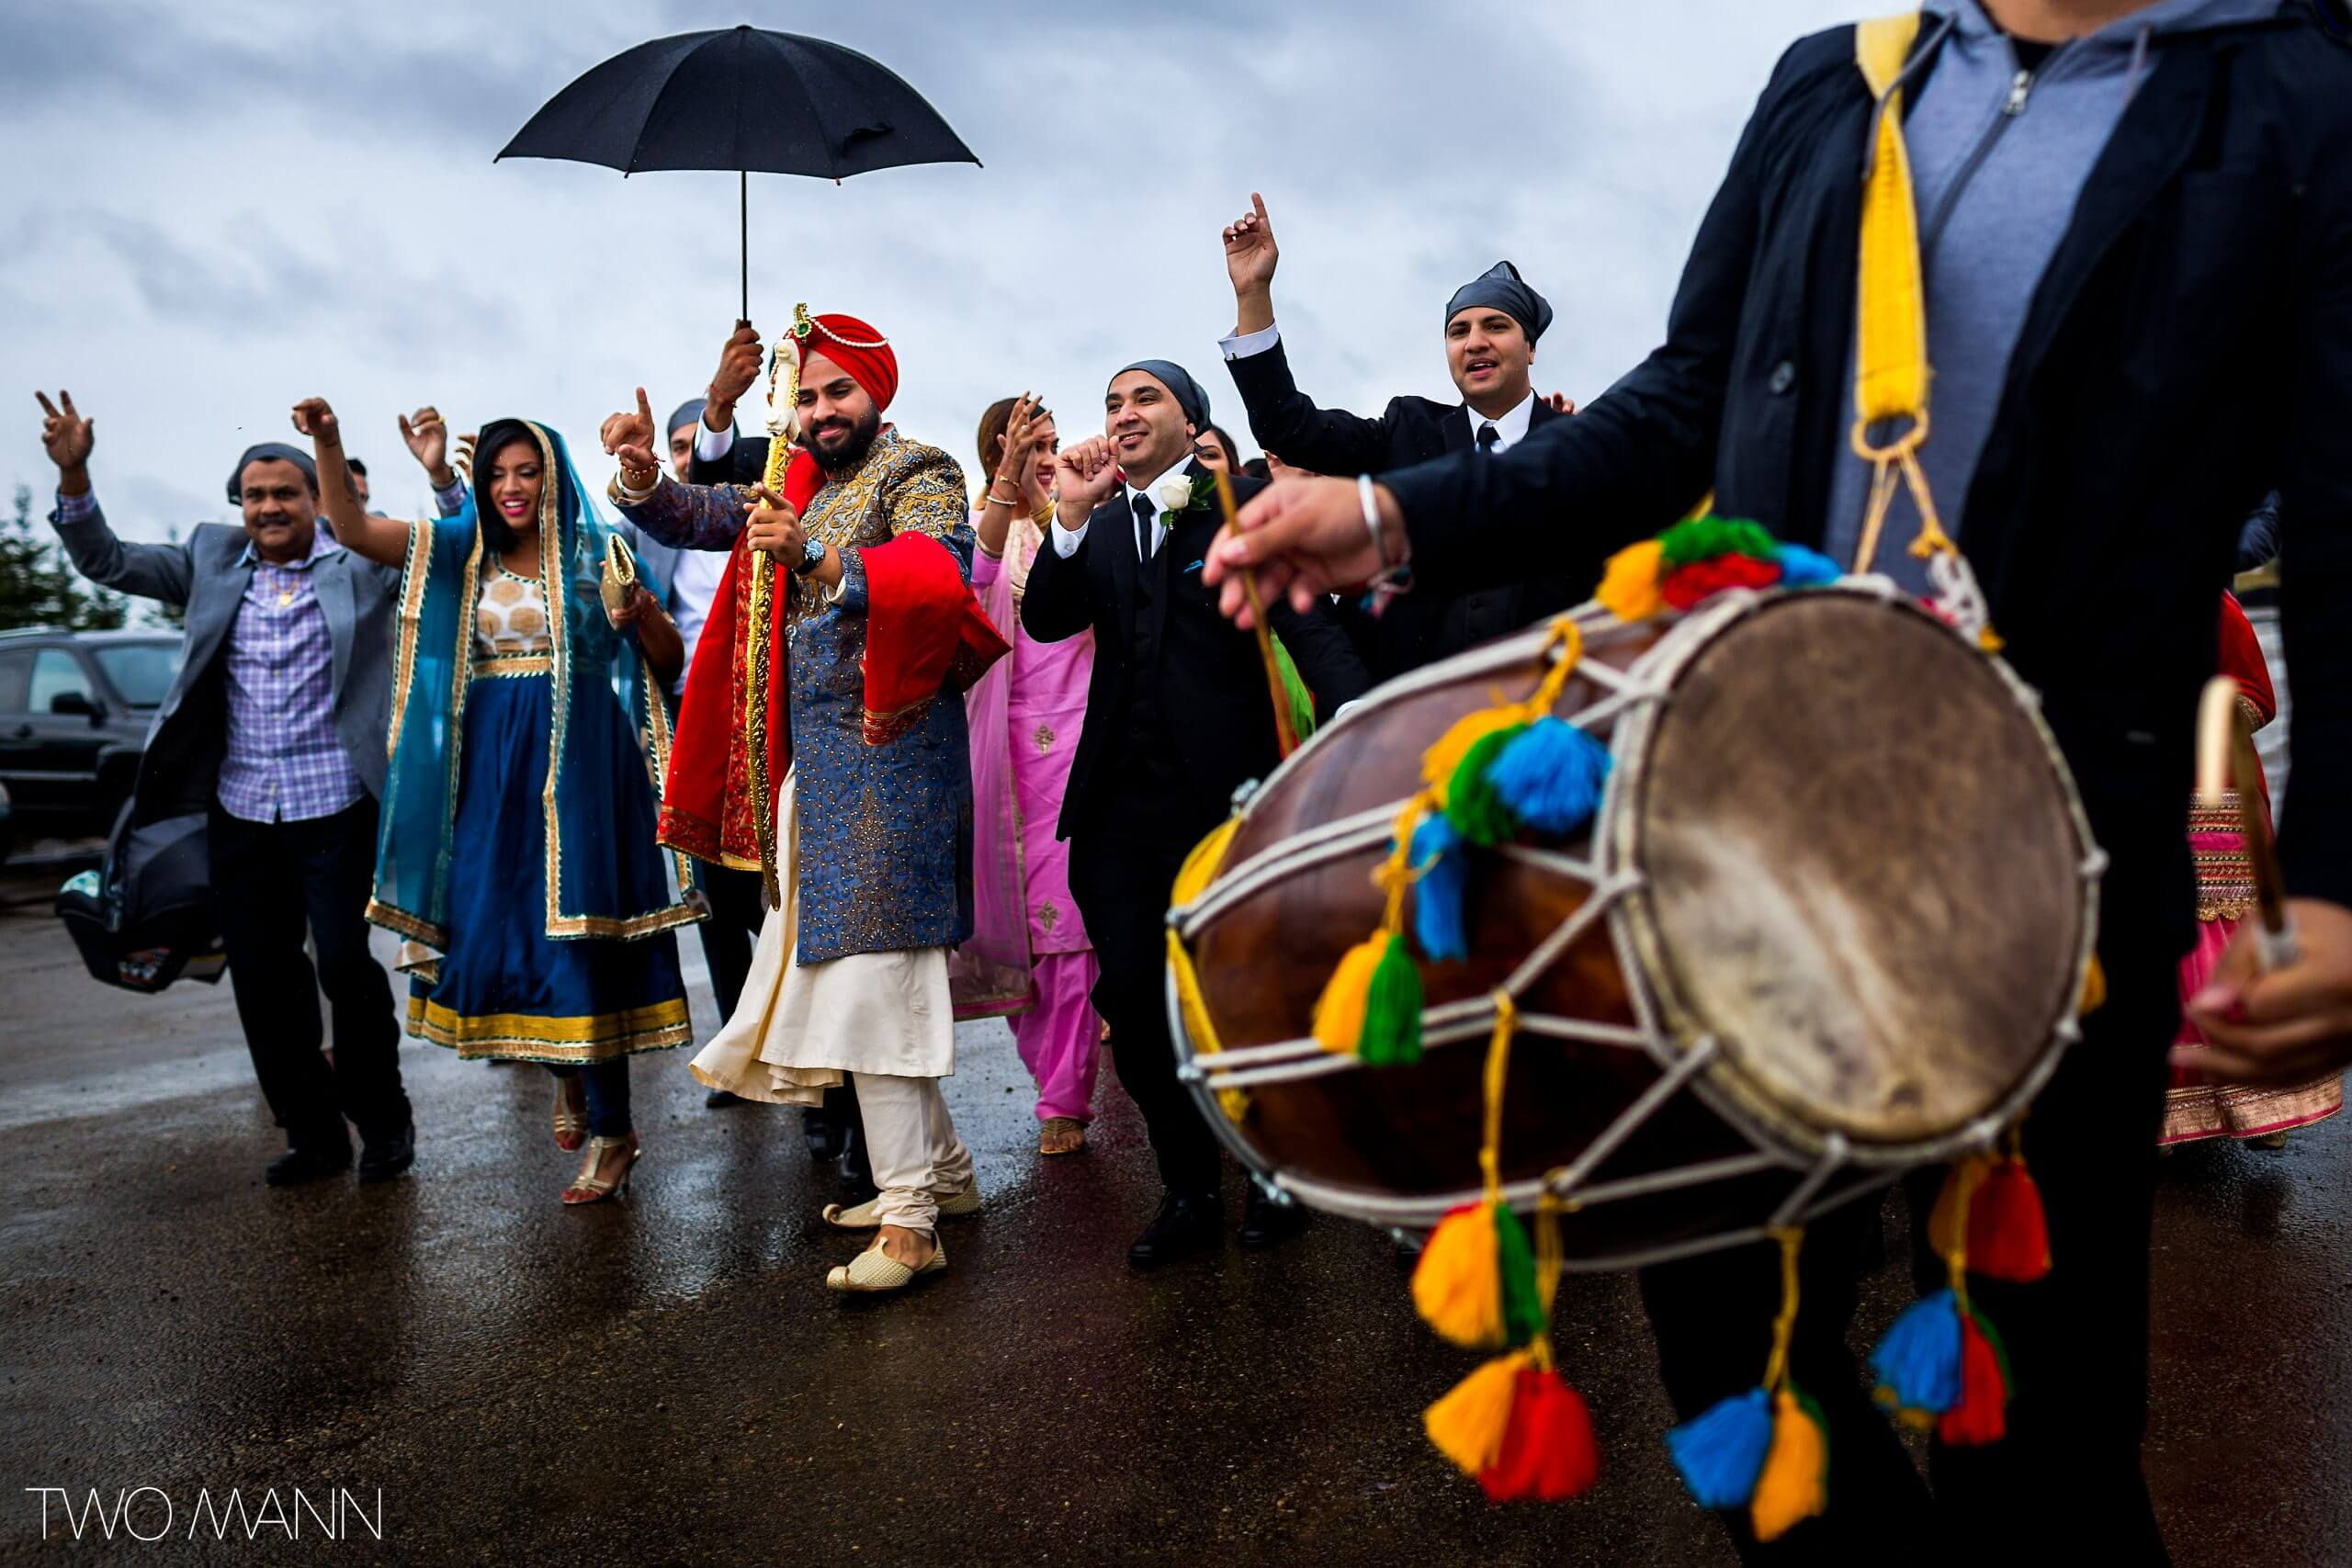 dance with the beat of drum at an Indian wedding ceremony